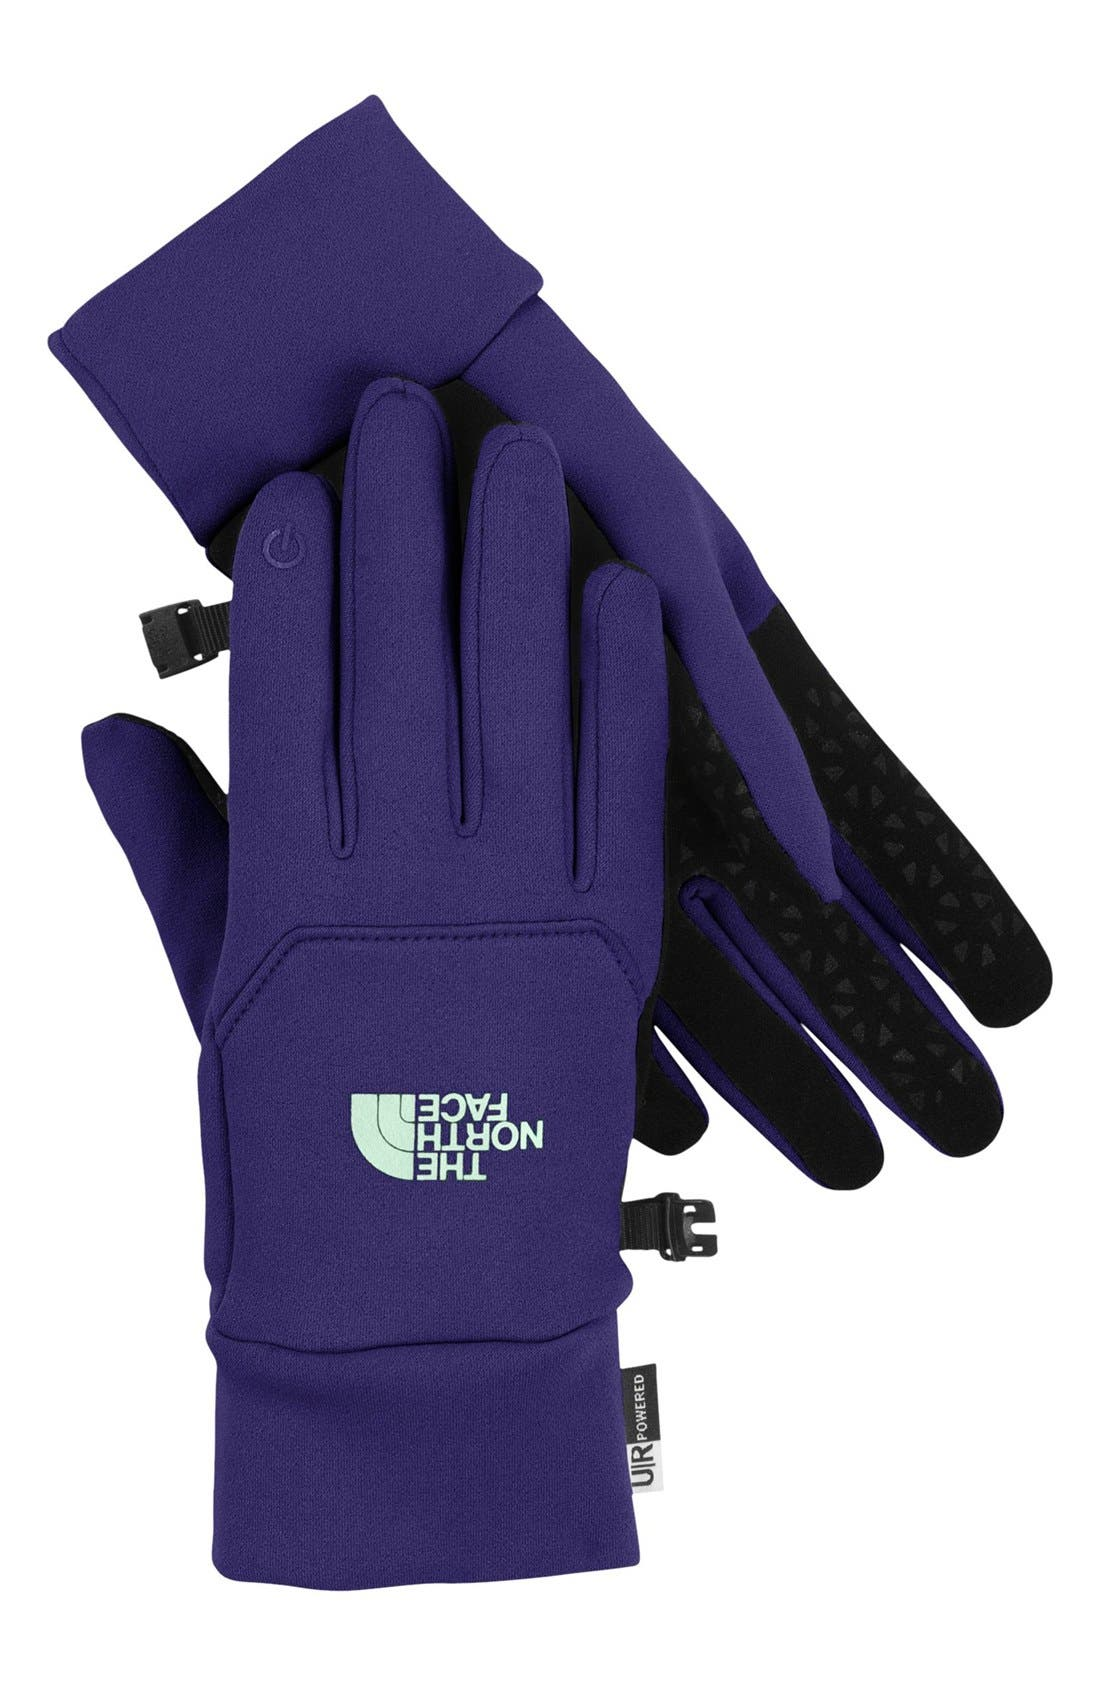 Main Image - The North Face 'E-Tip' Glove (Regular Retail Price: $45.00)